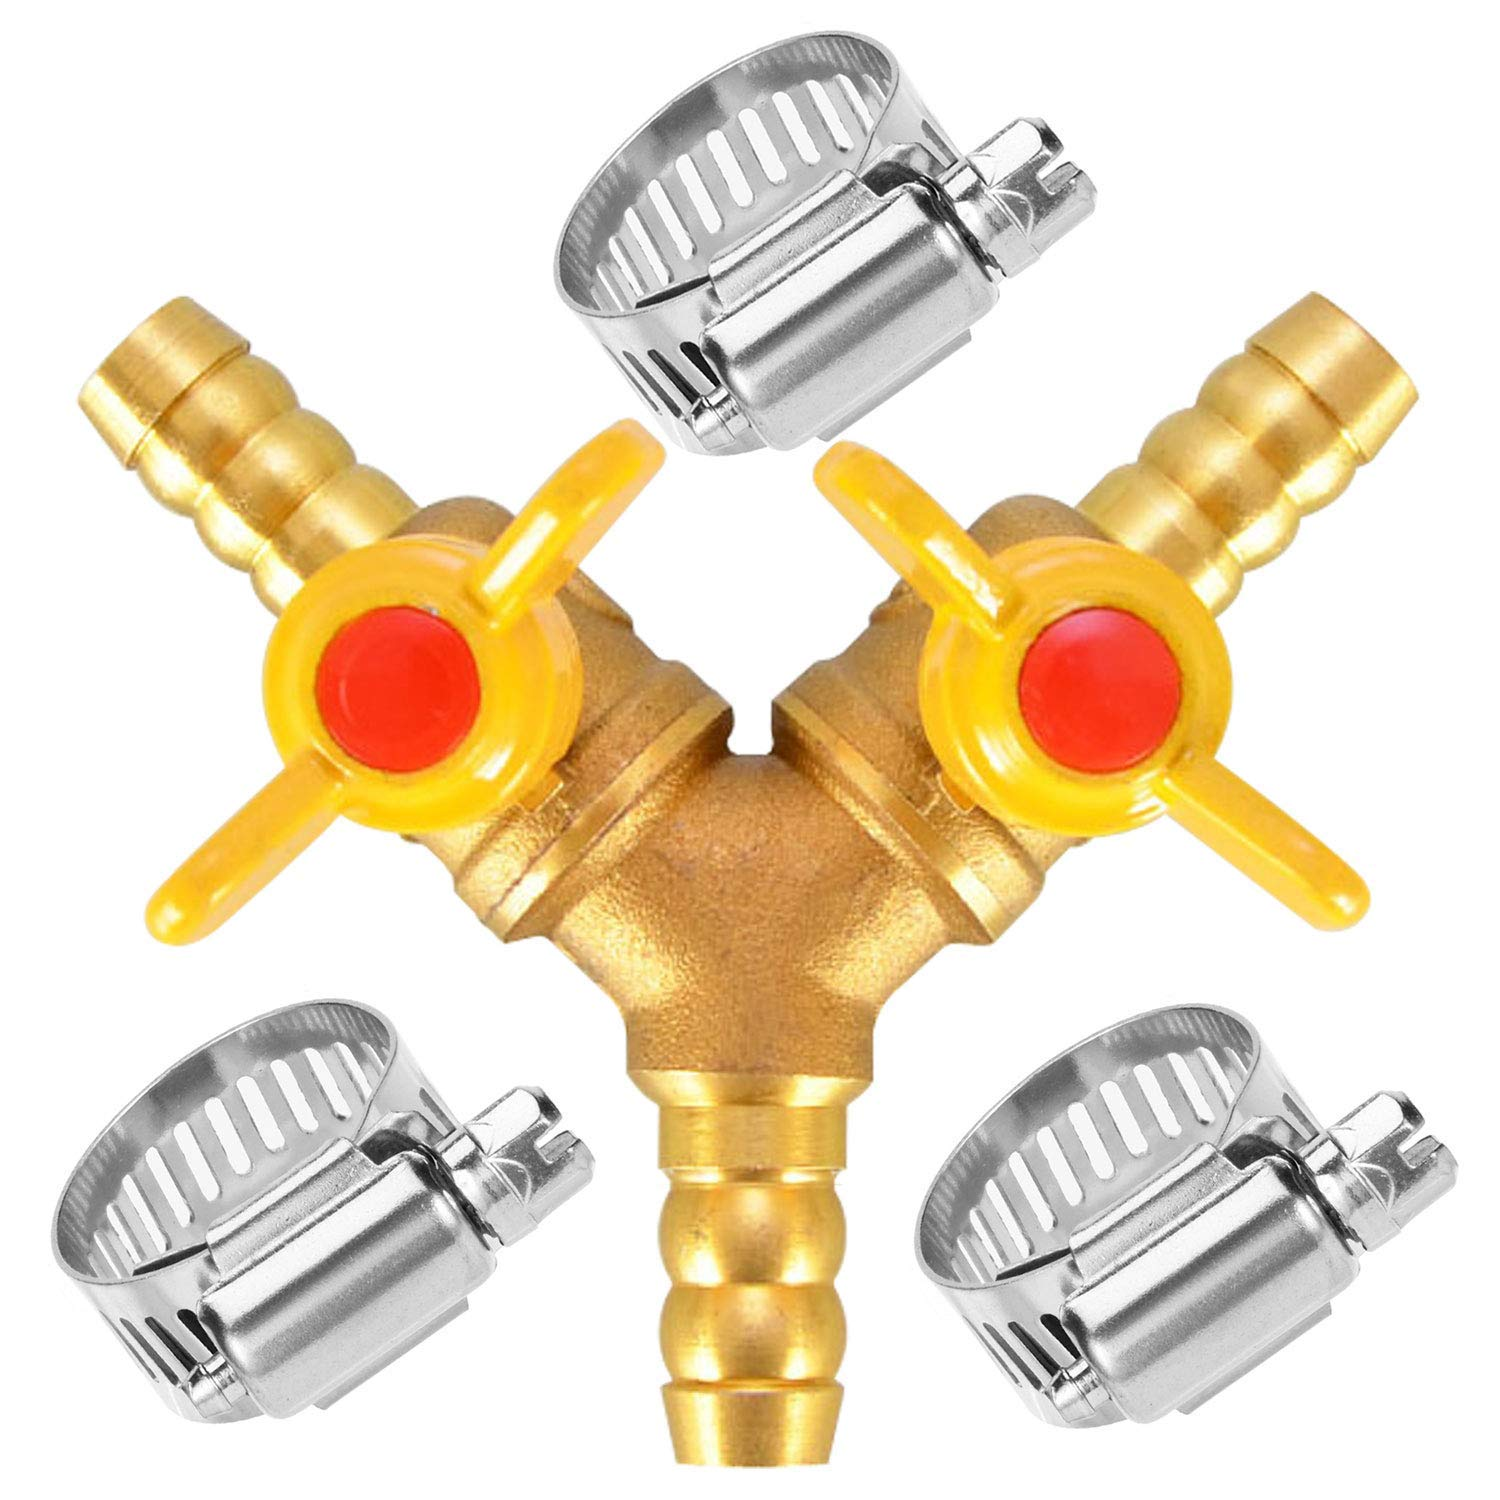 """Da by Hose Barb Ball Valve 3/8"""" Brass Fitting Y Shaped 2 Switch 3 Way Connector(for Hose ID 10mm-11mm)"""